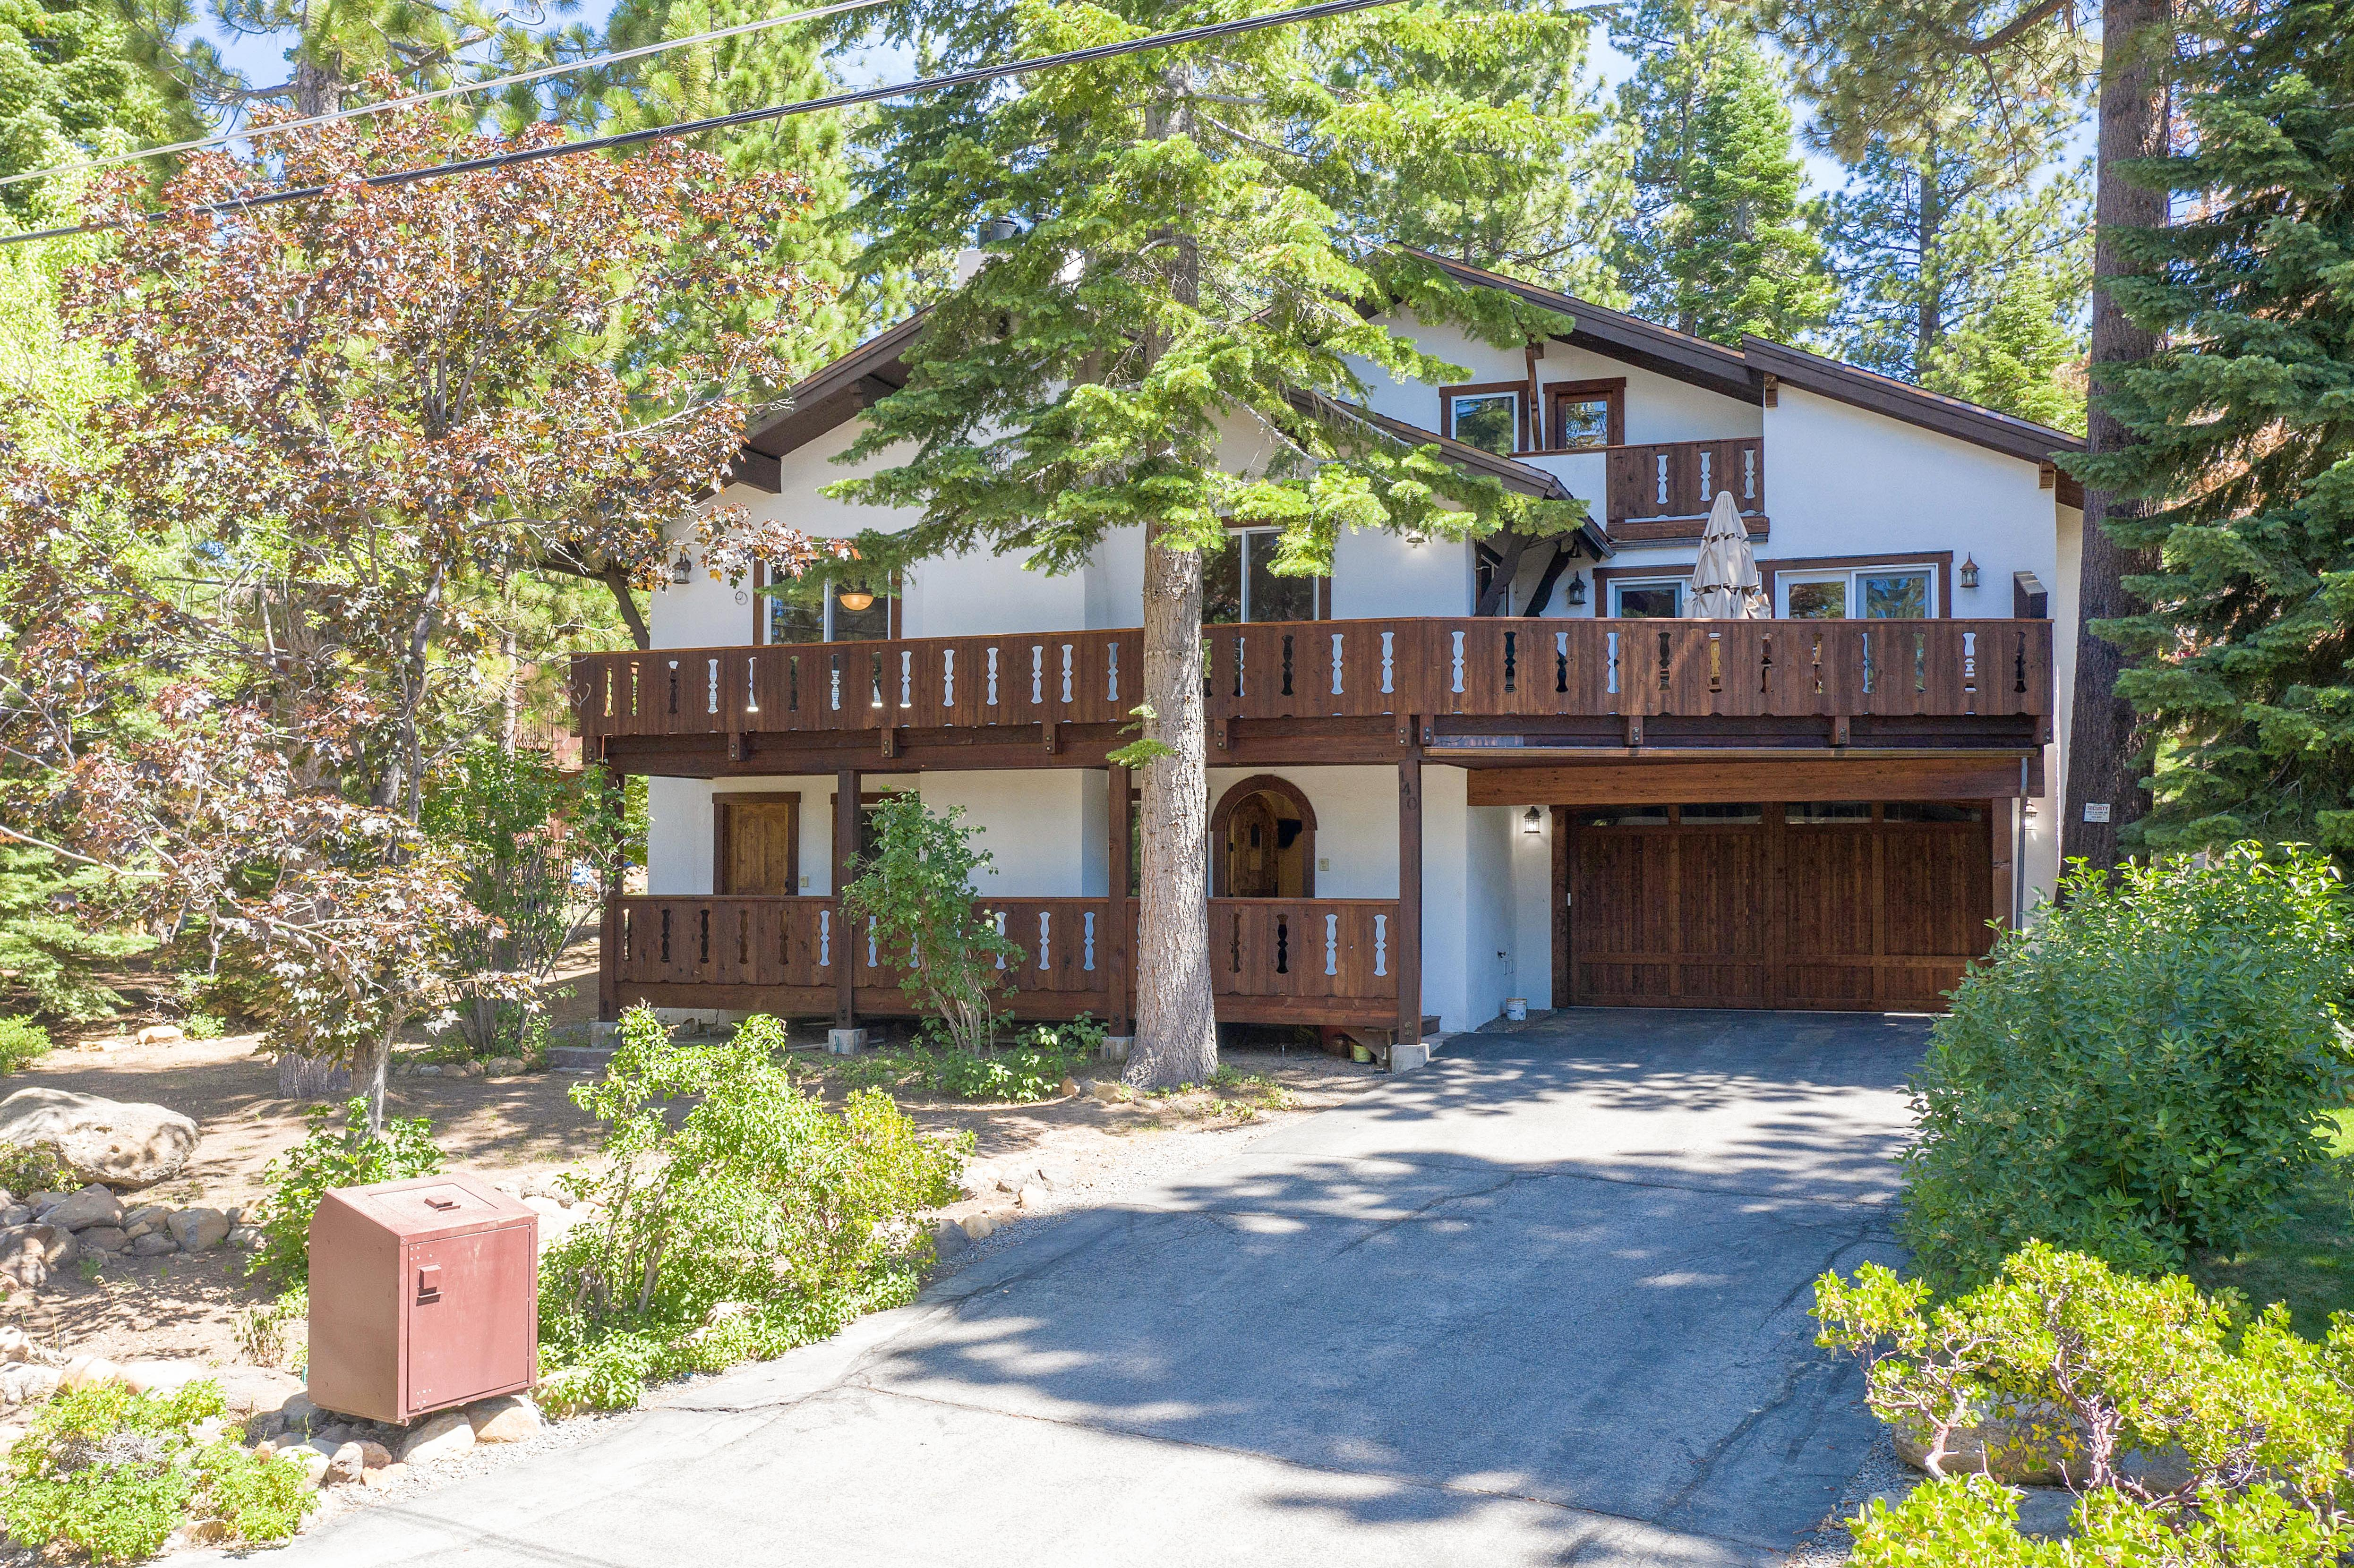 Tahoe City is about 3 miles from the rental and provides cafes, shops, and local attractions.